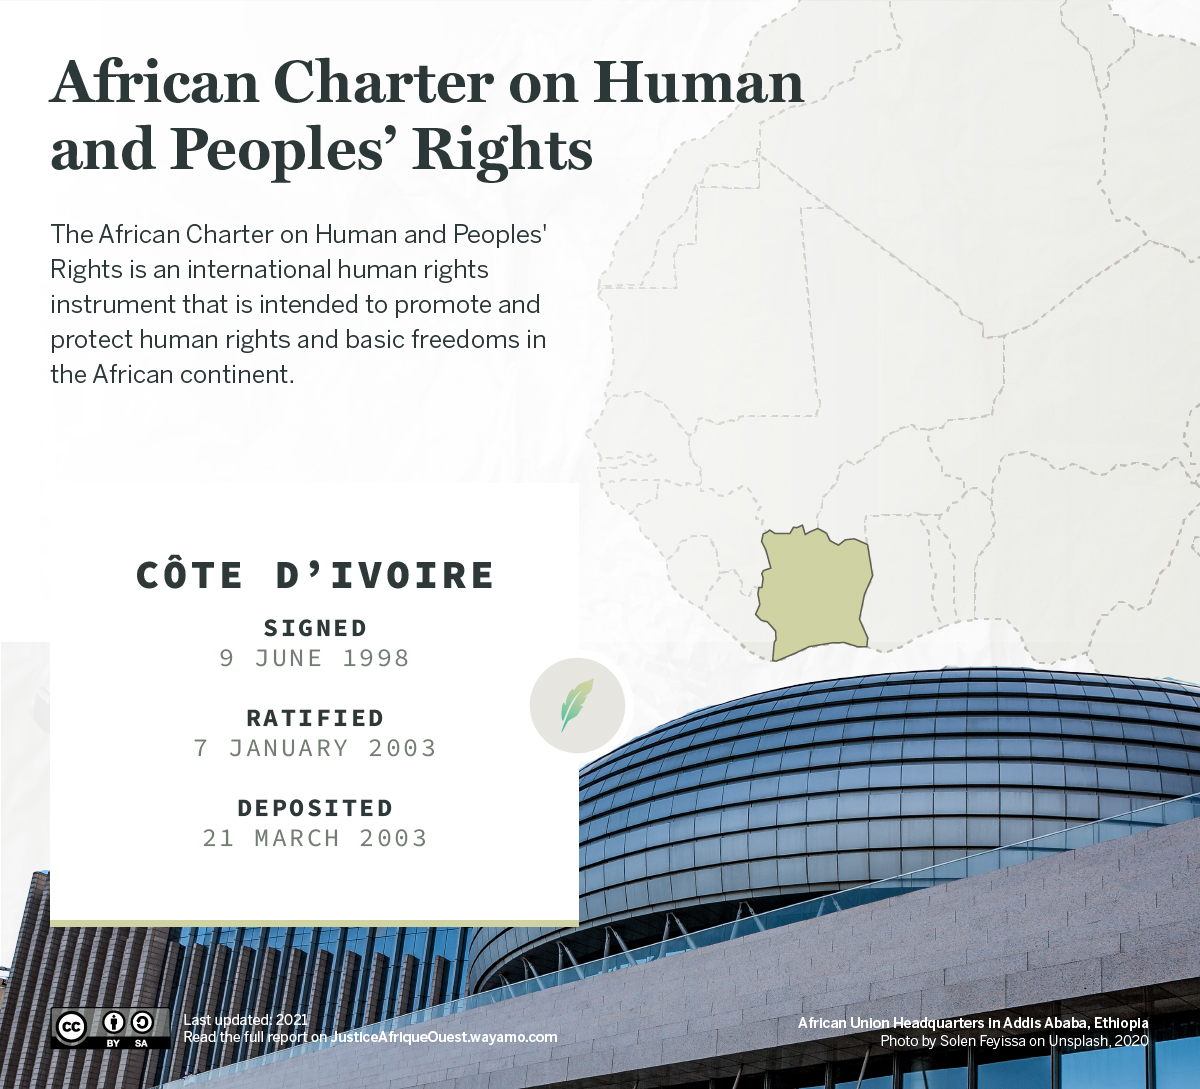 COTE D'IVOIRE_African Charter - Wayamo Foundation (CC BY-SA 4.0)